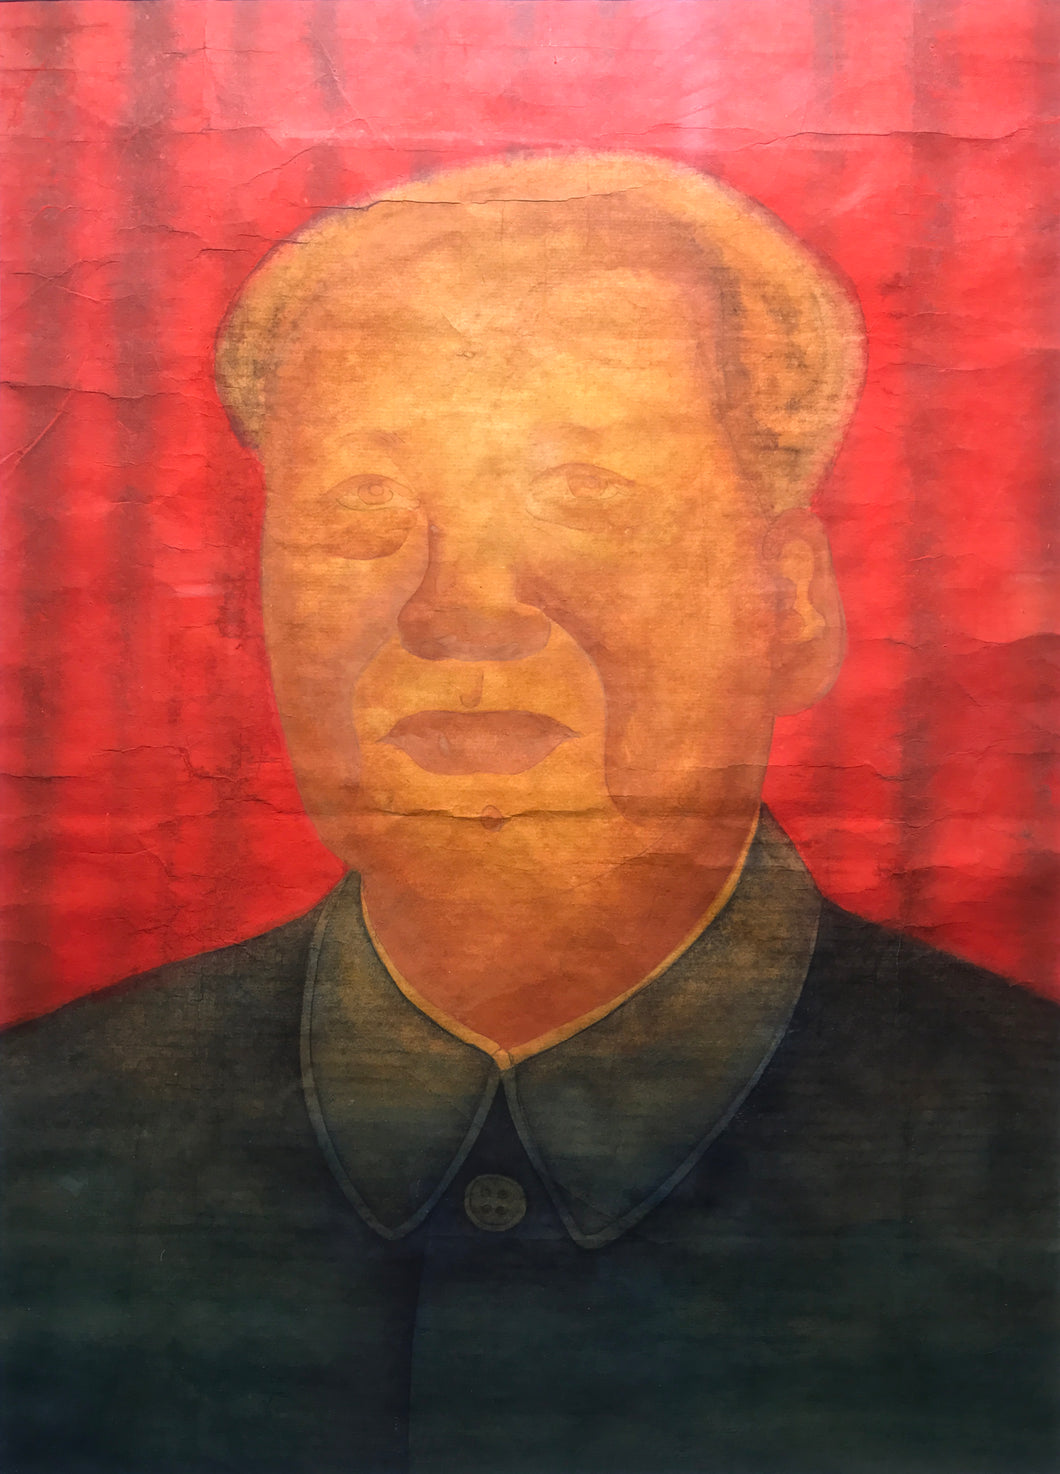 Ink and Wash Research Lecture series (Mao Zedong) 水墨研究课徒系列(毛泽东)